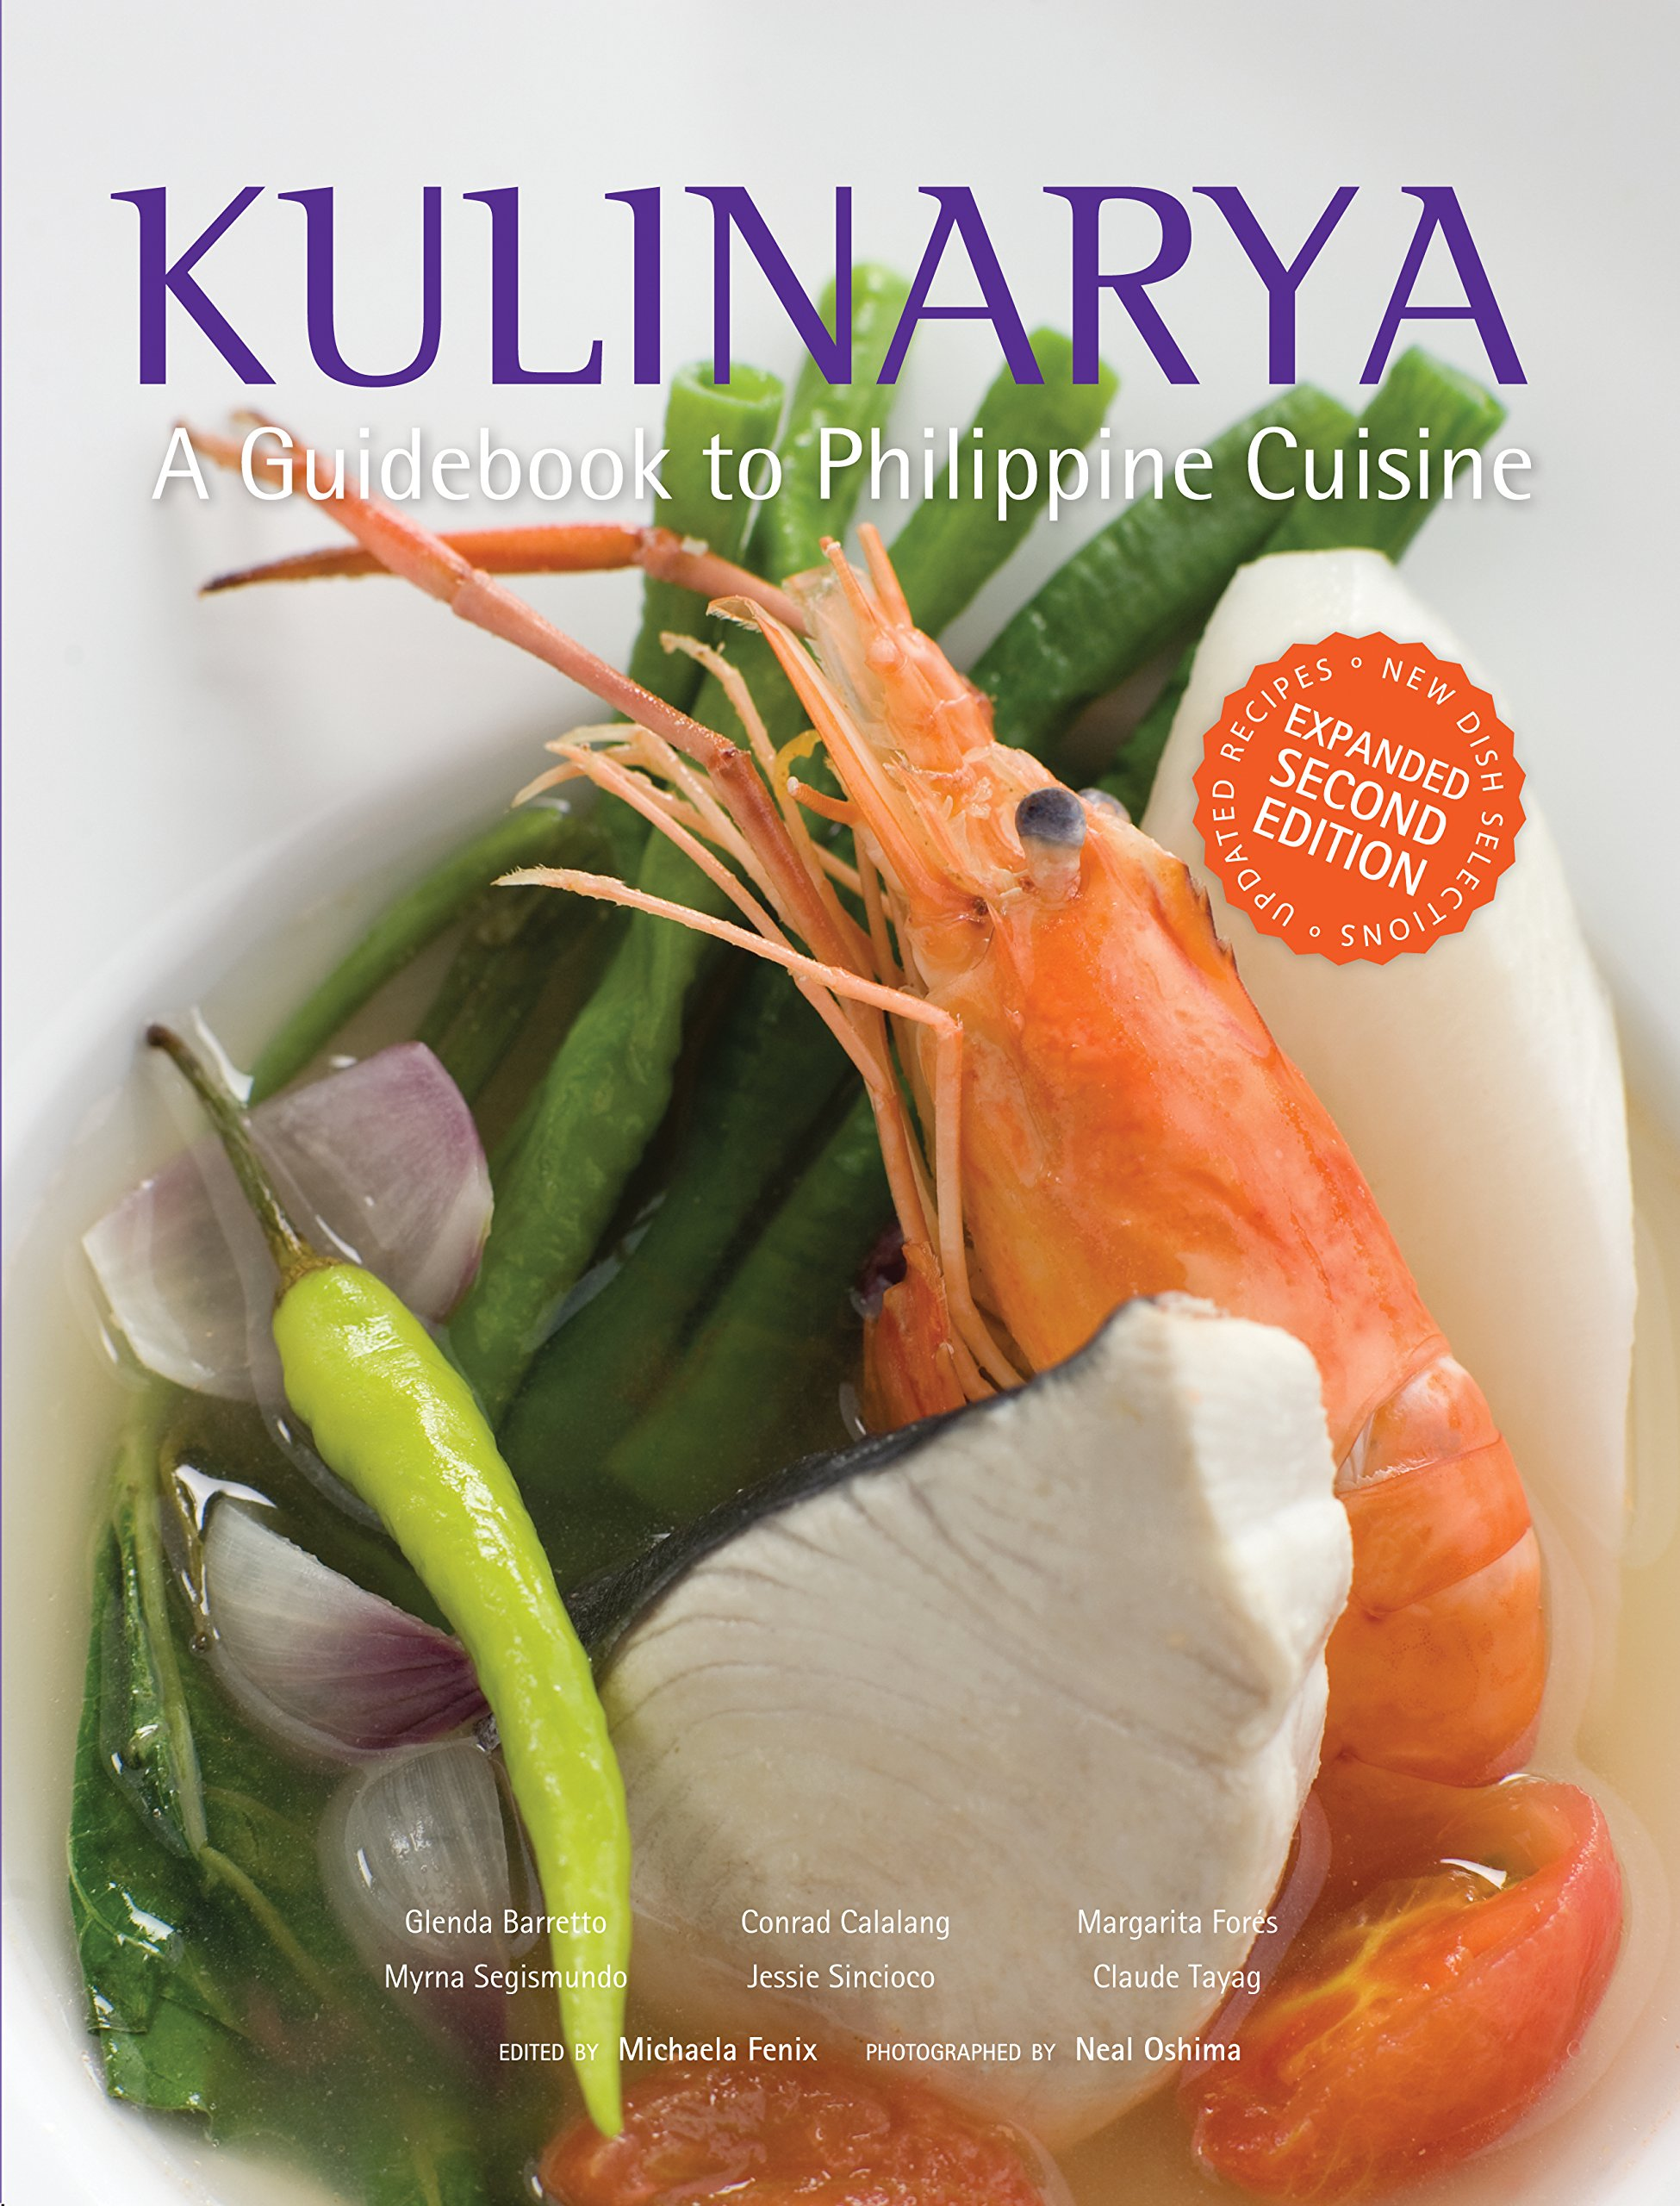 Kulinarya a guidebook to philippine cuisine glenda r barretto et kulinarya a guidebook to philippine cuisine glenda r barretto et al neal oshima 9789712728723 amazon books forumfinder Image collections